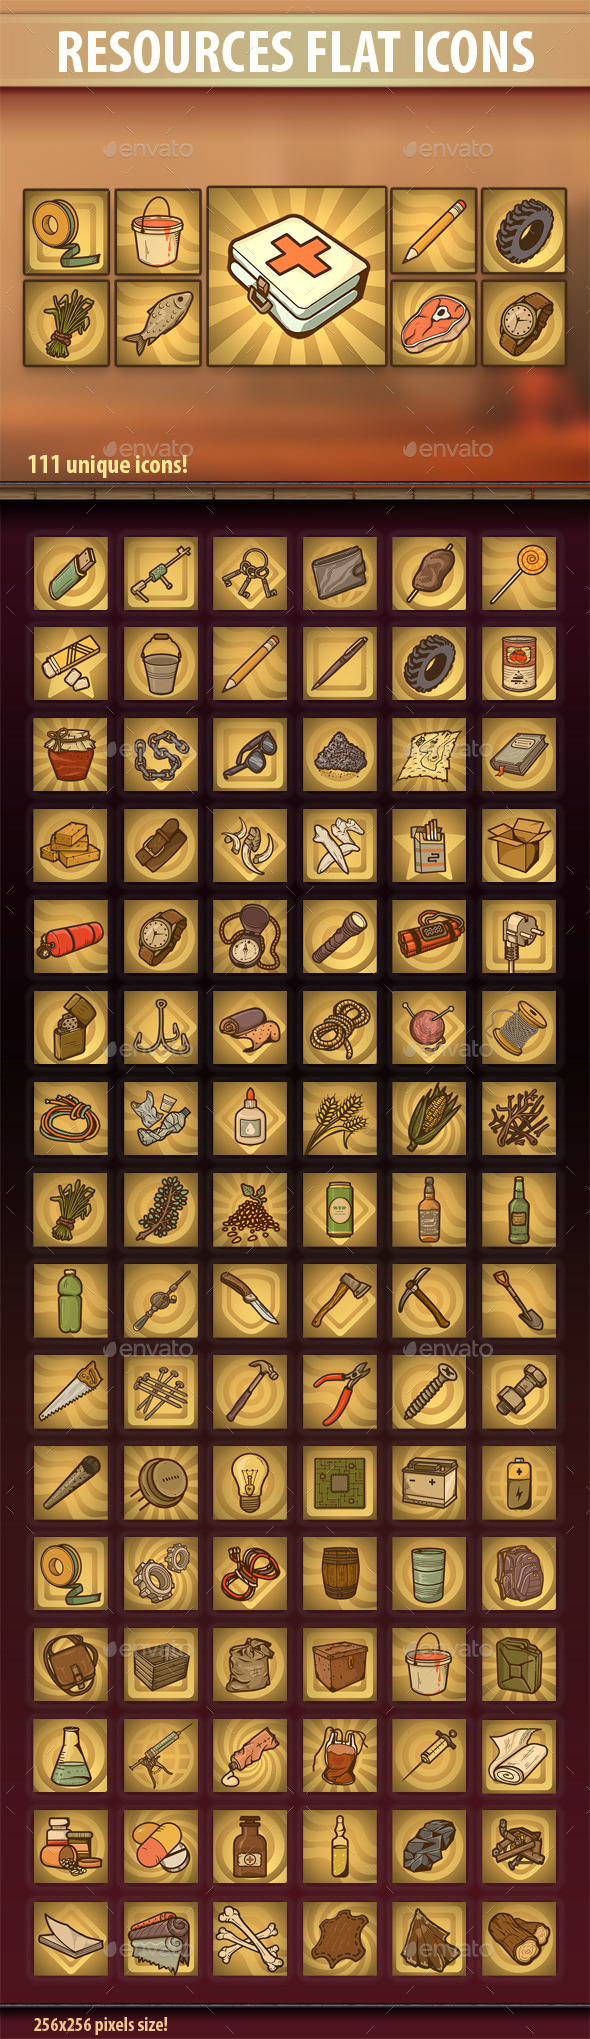 Resources Flat Icons - Miscellaneous Game Assets